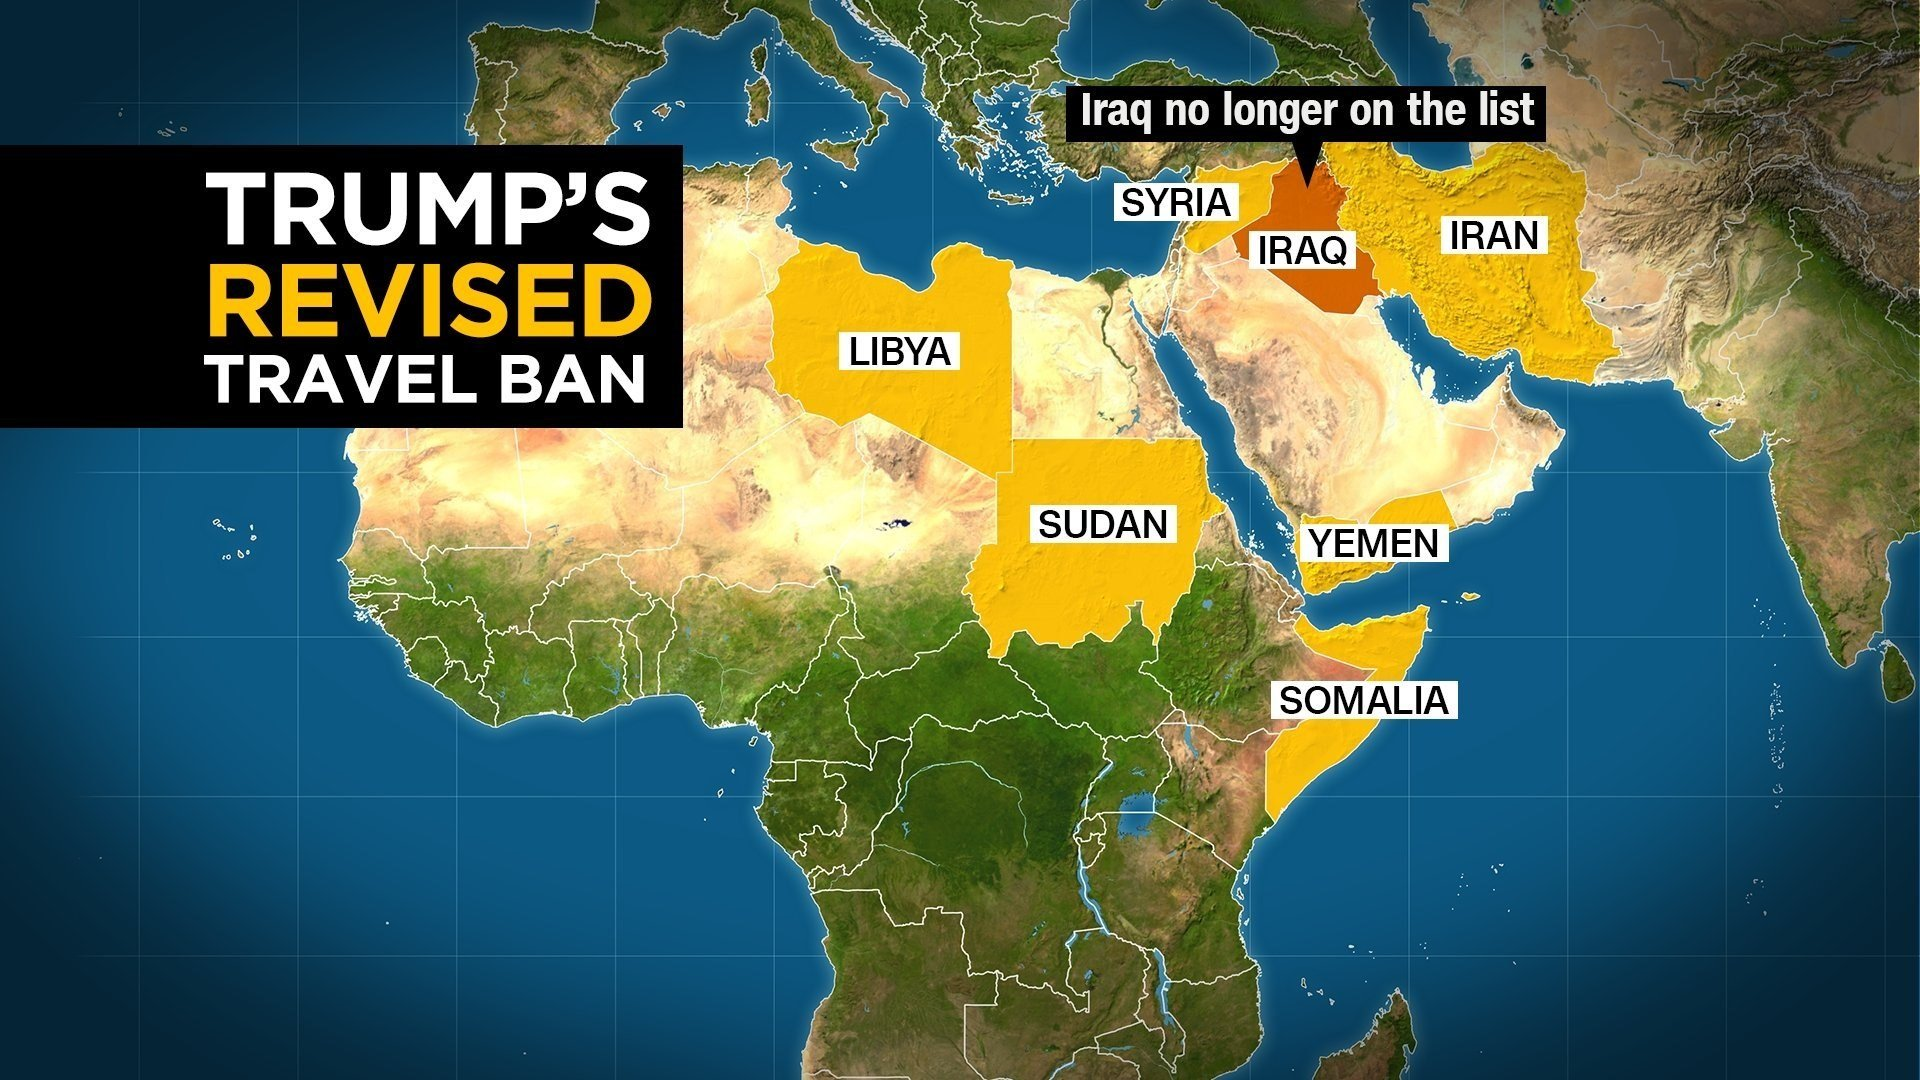 Trump Travel Ban Is Discouraging US Visitors Azfamilycom TV - Us travel map weather